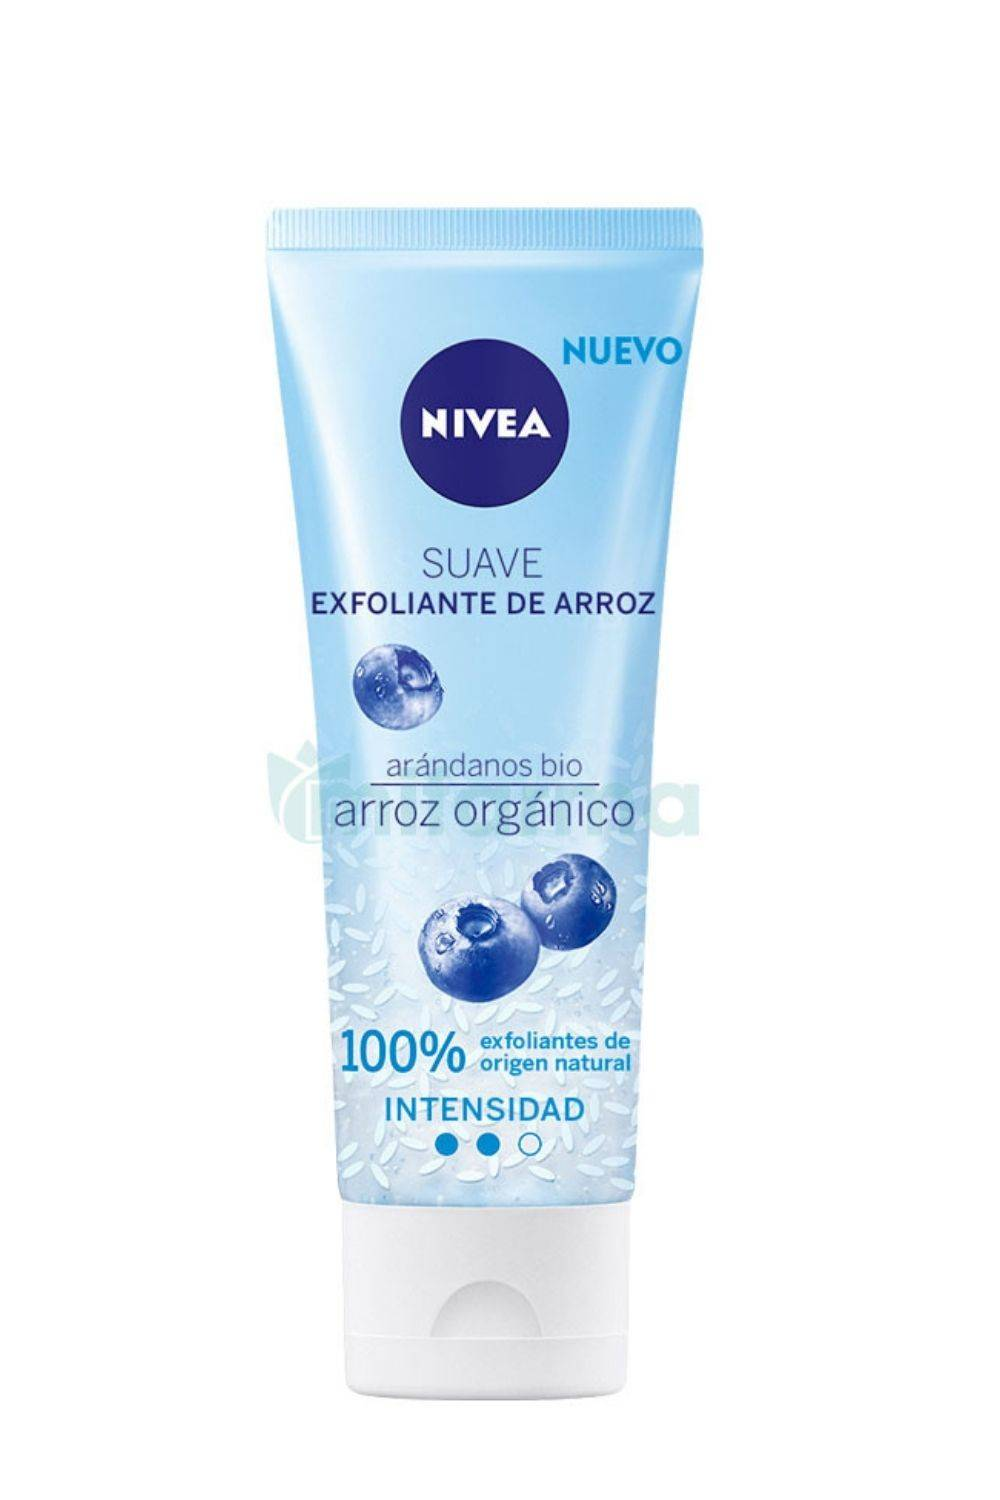 NIVEA EXFOLIANTE DE ARROZ SUAVE BIO 75ML